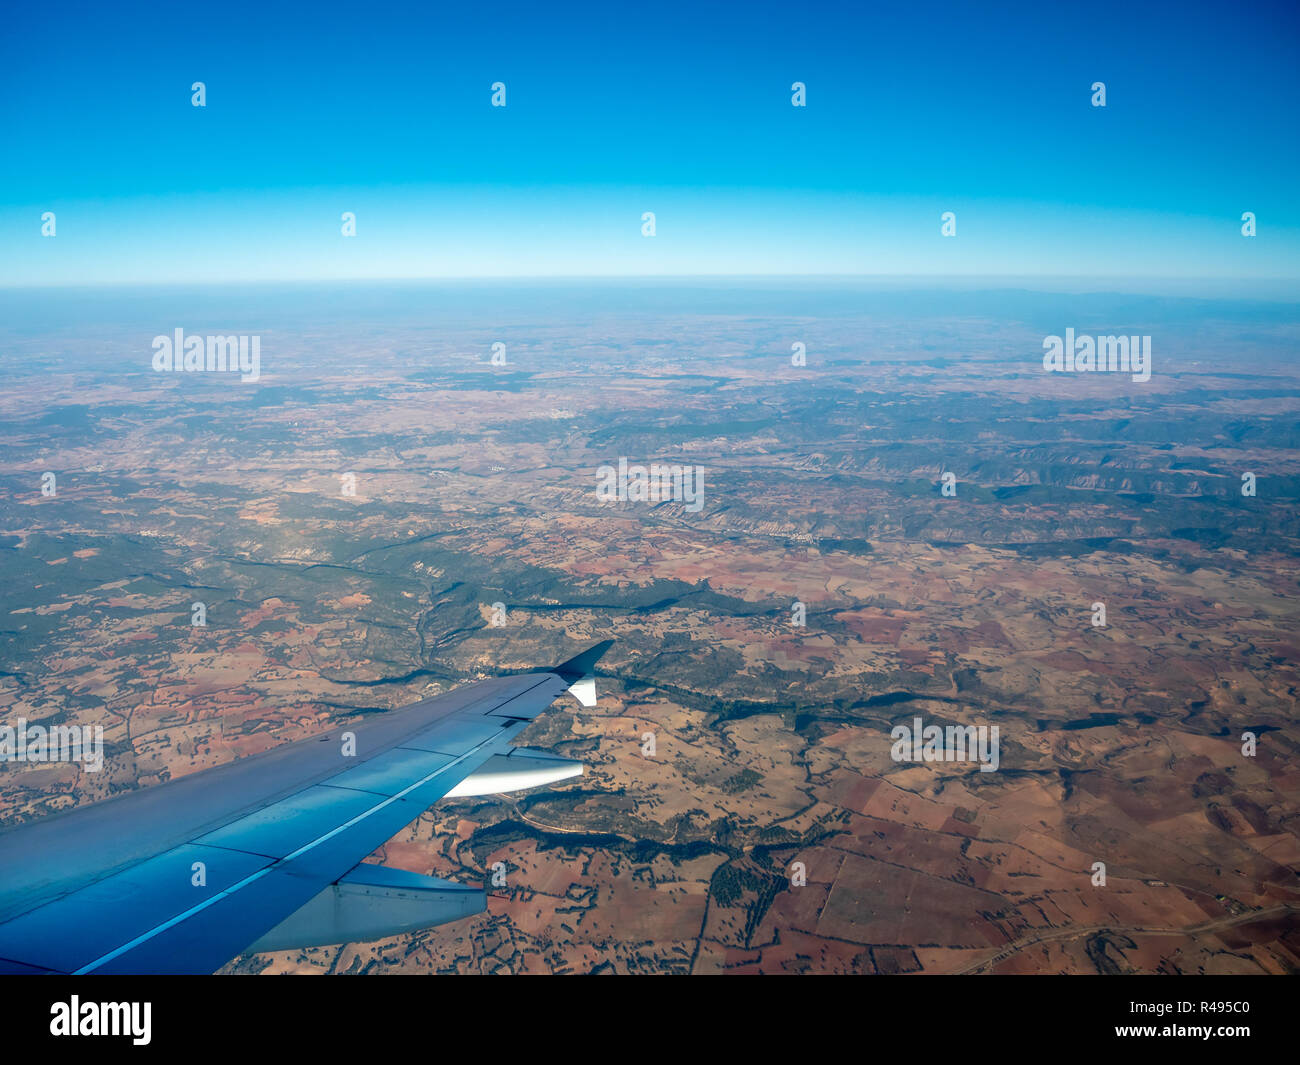 Aerial View of Mountain Formation Outside of Madrid Looking Out of Plane Making a Right Turn - Stock Image